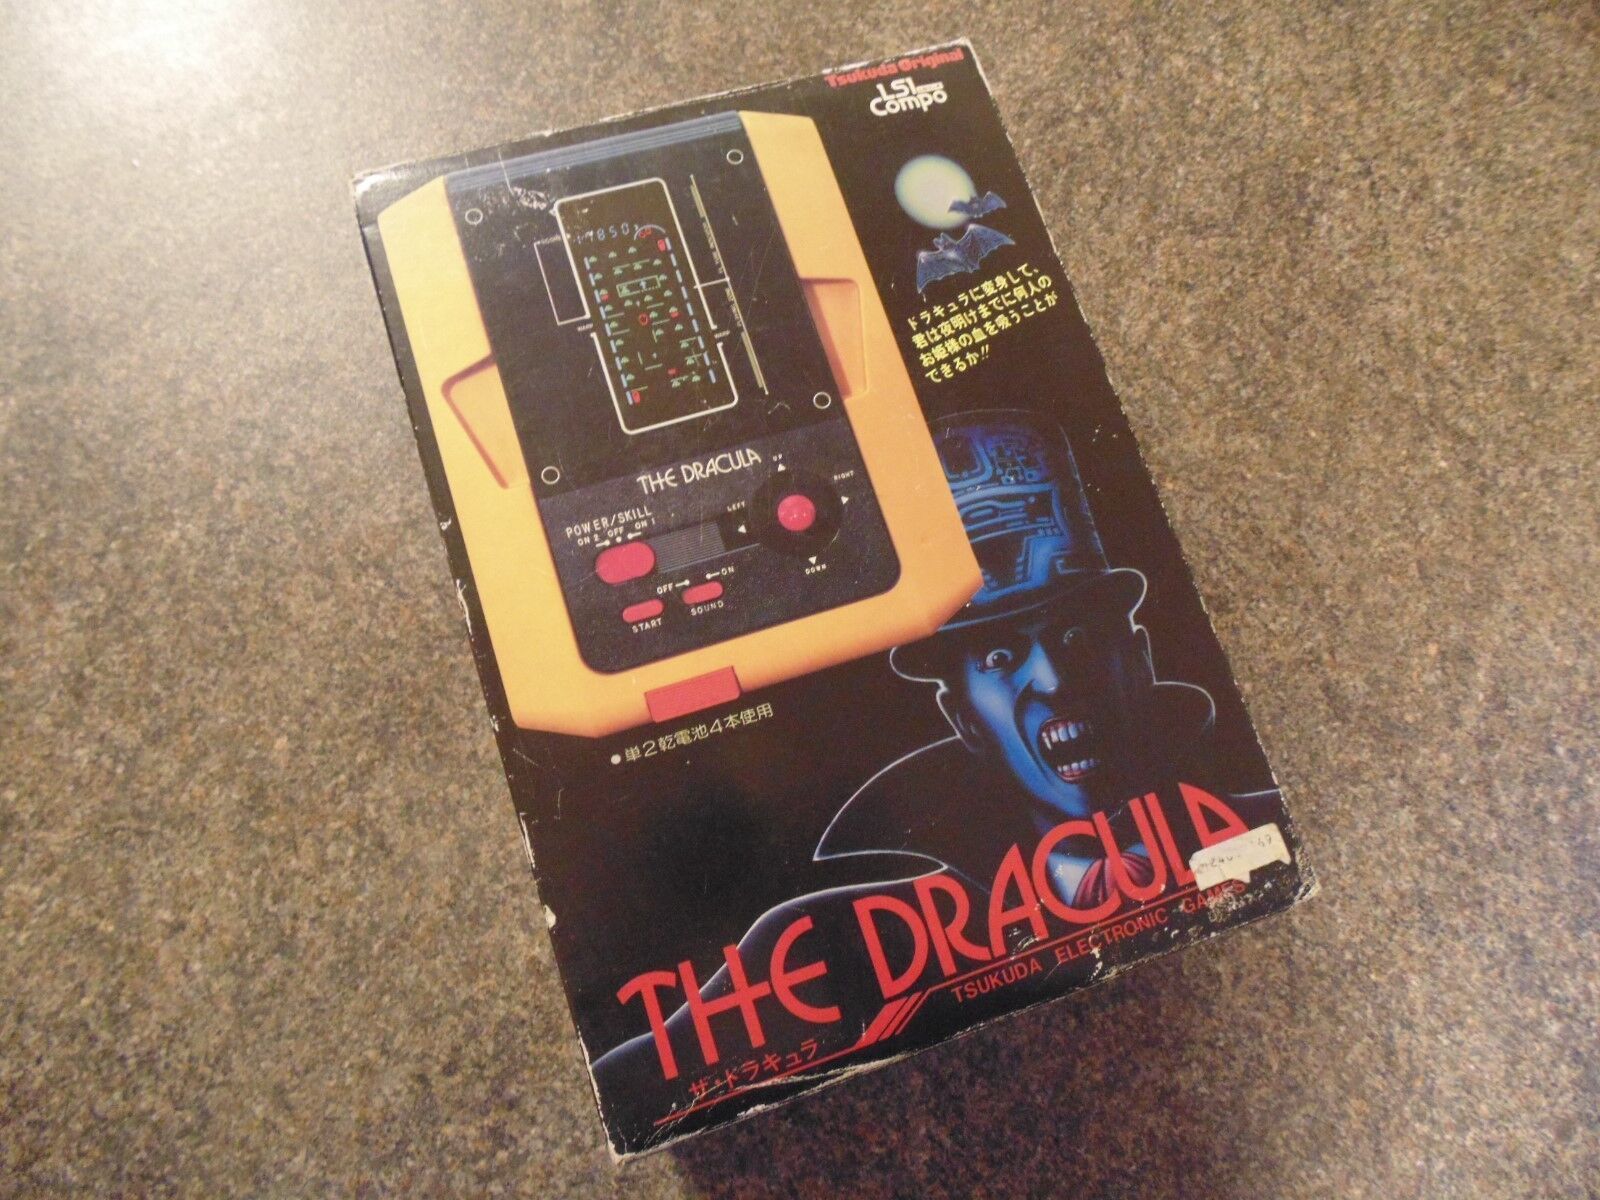 THE DRACULA TSUKUDA 1982 TABLETOP HANDHELD RETRO GAME BOXED COMPLETE  AMAZING